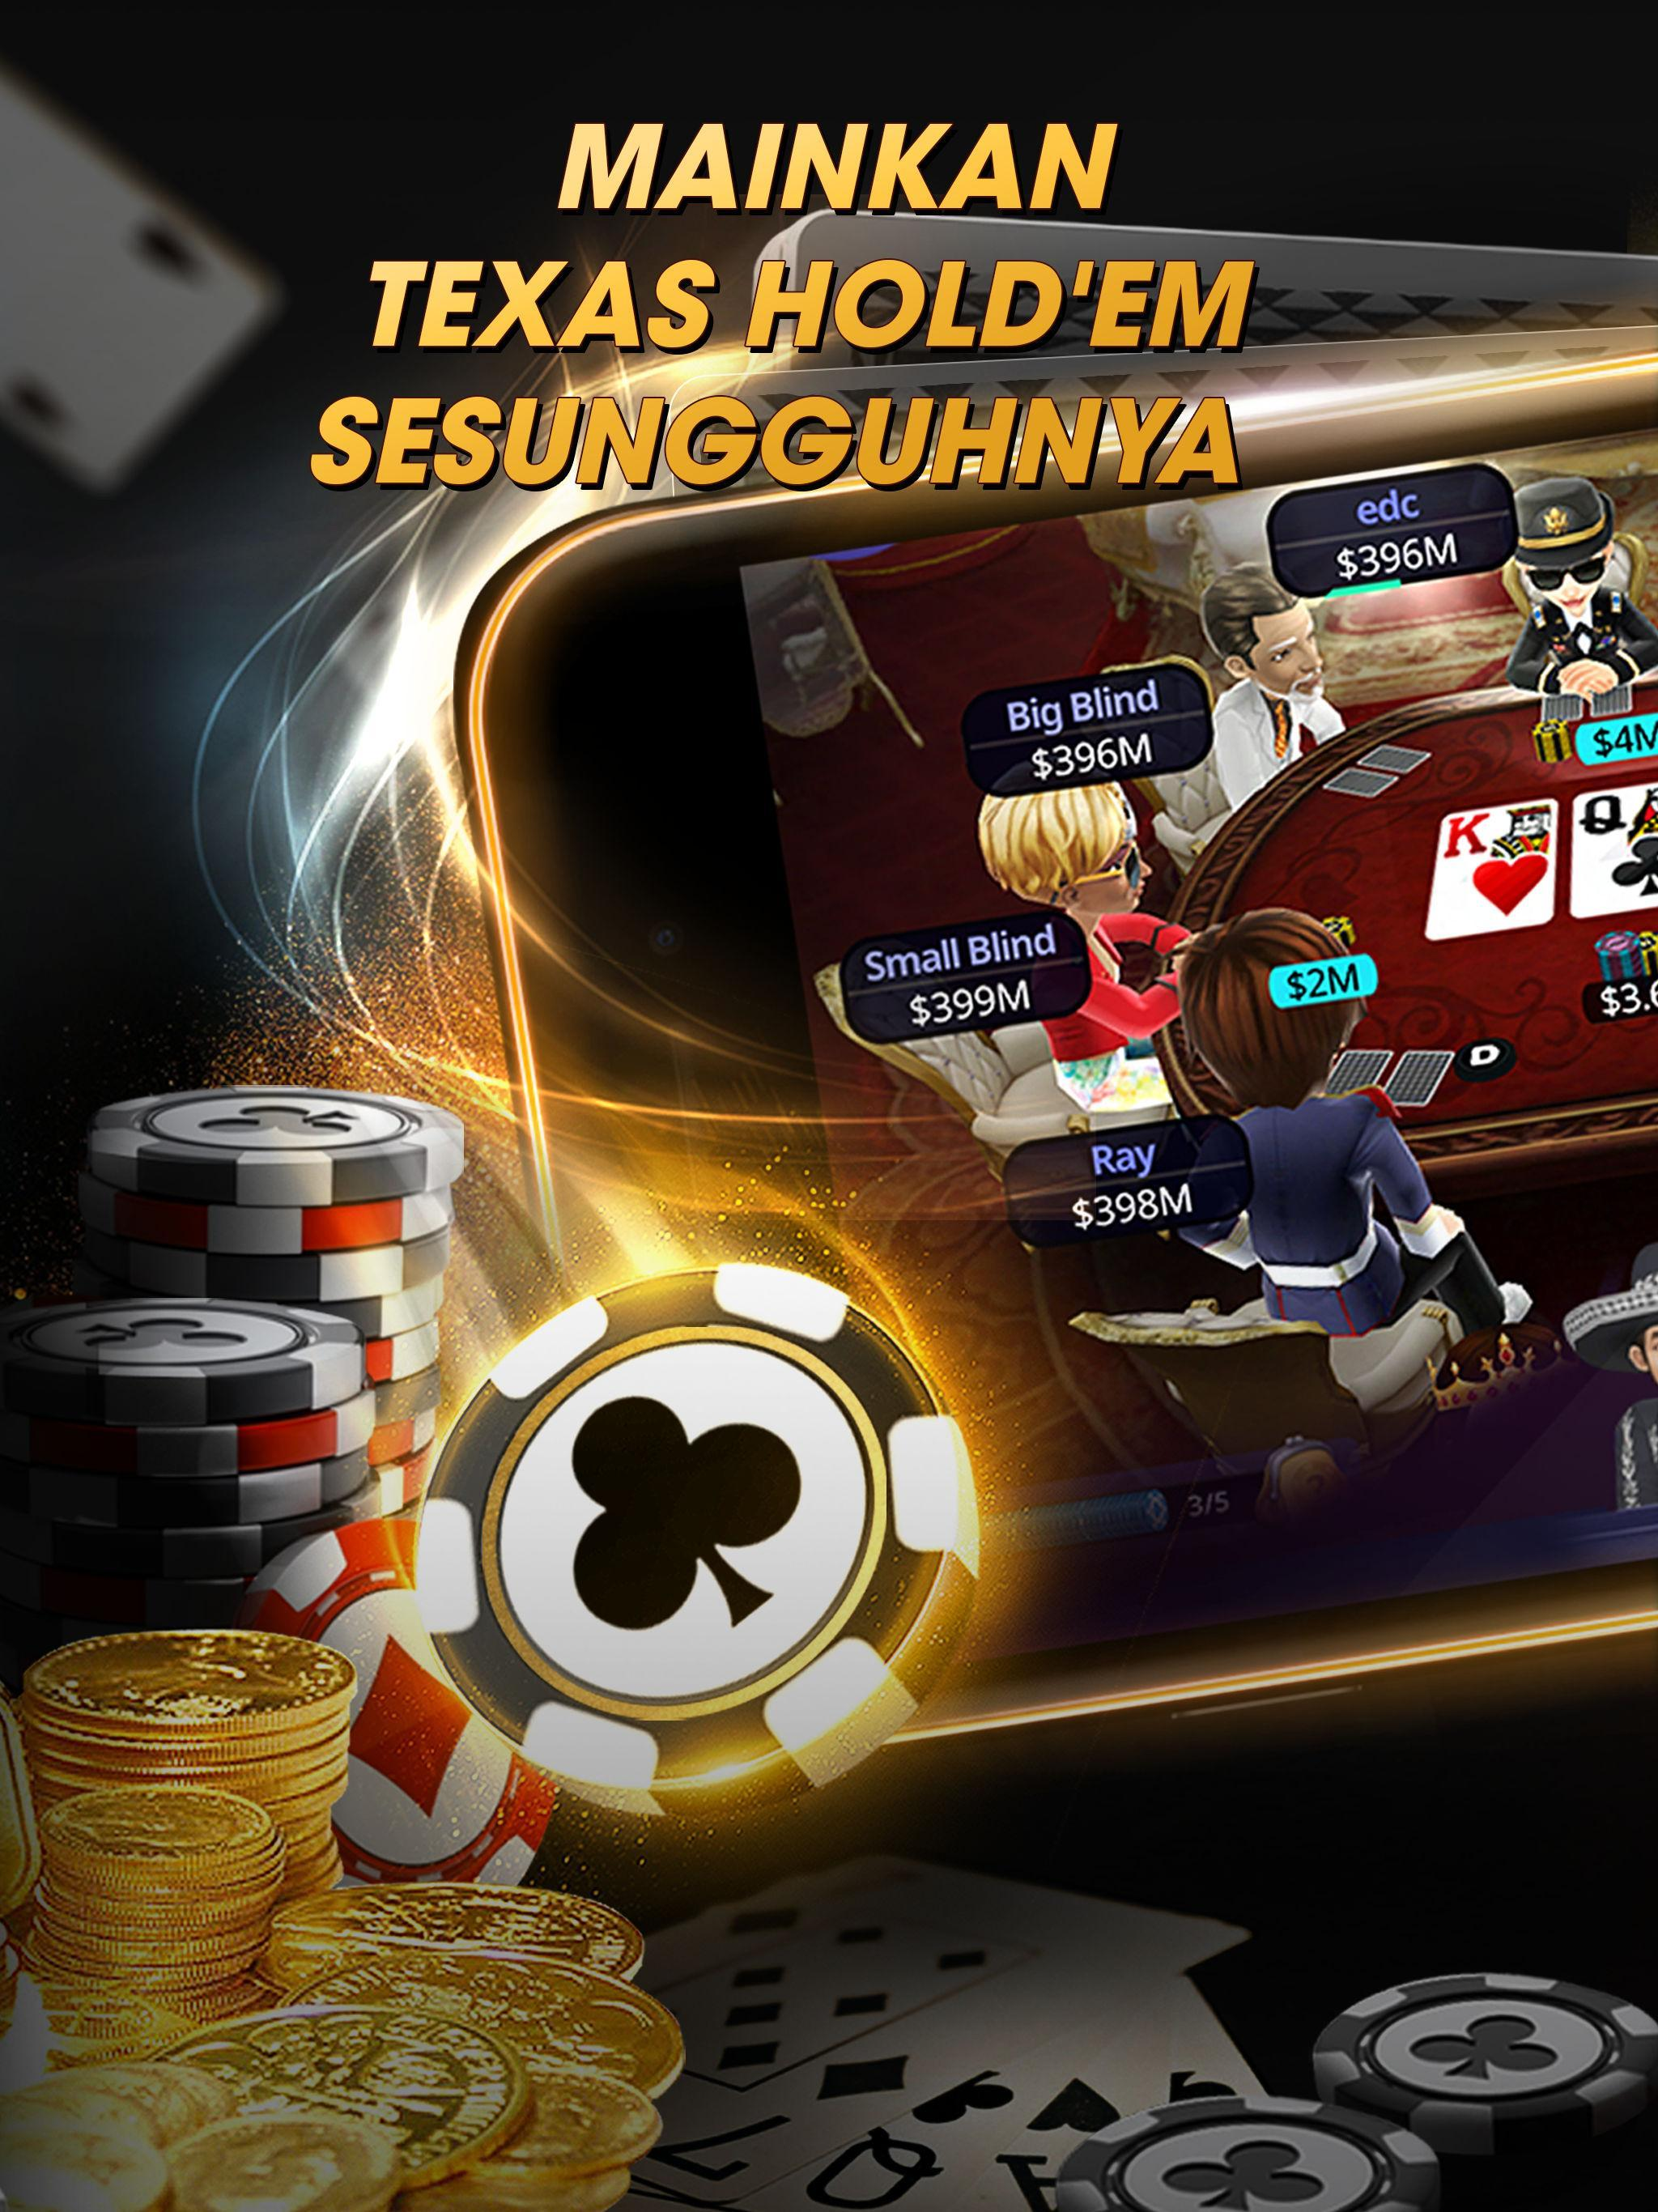 4ones Poker Texas Hold Em For Android Apk Download